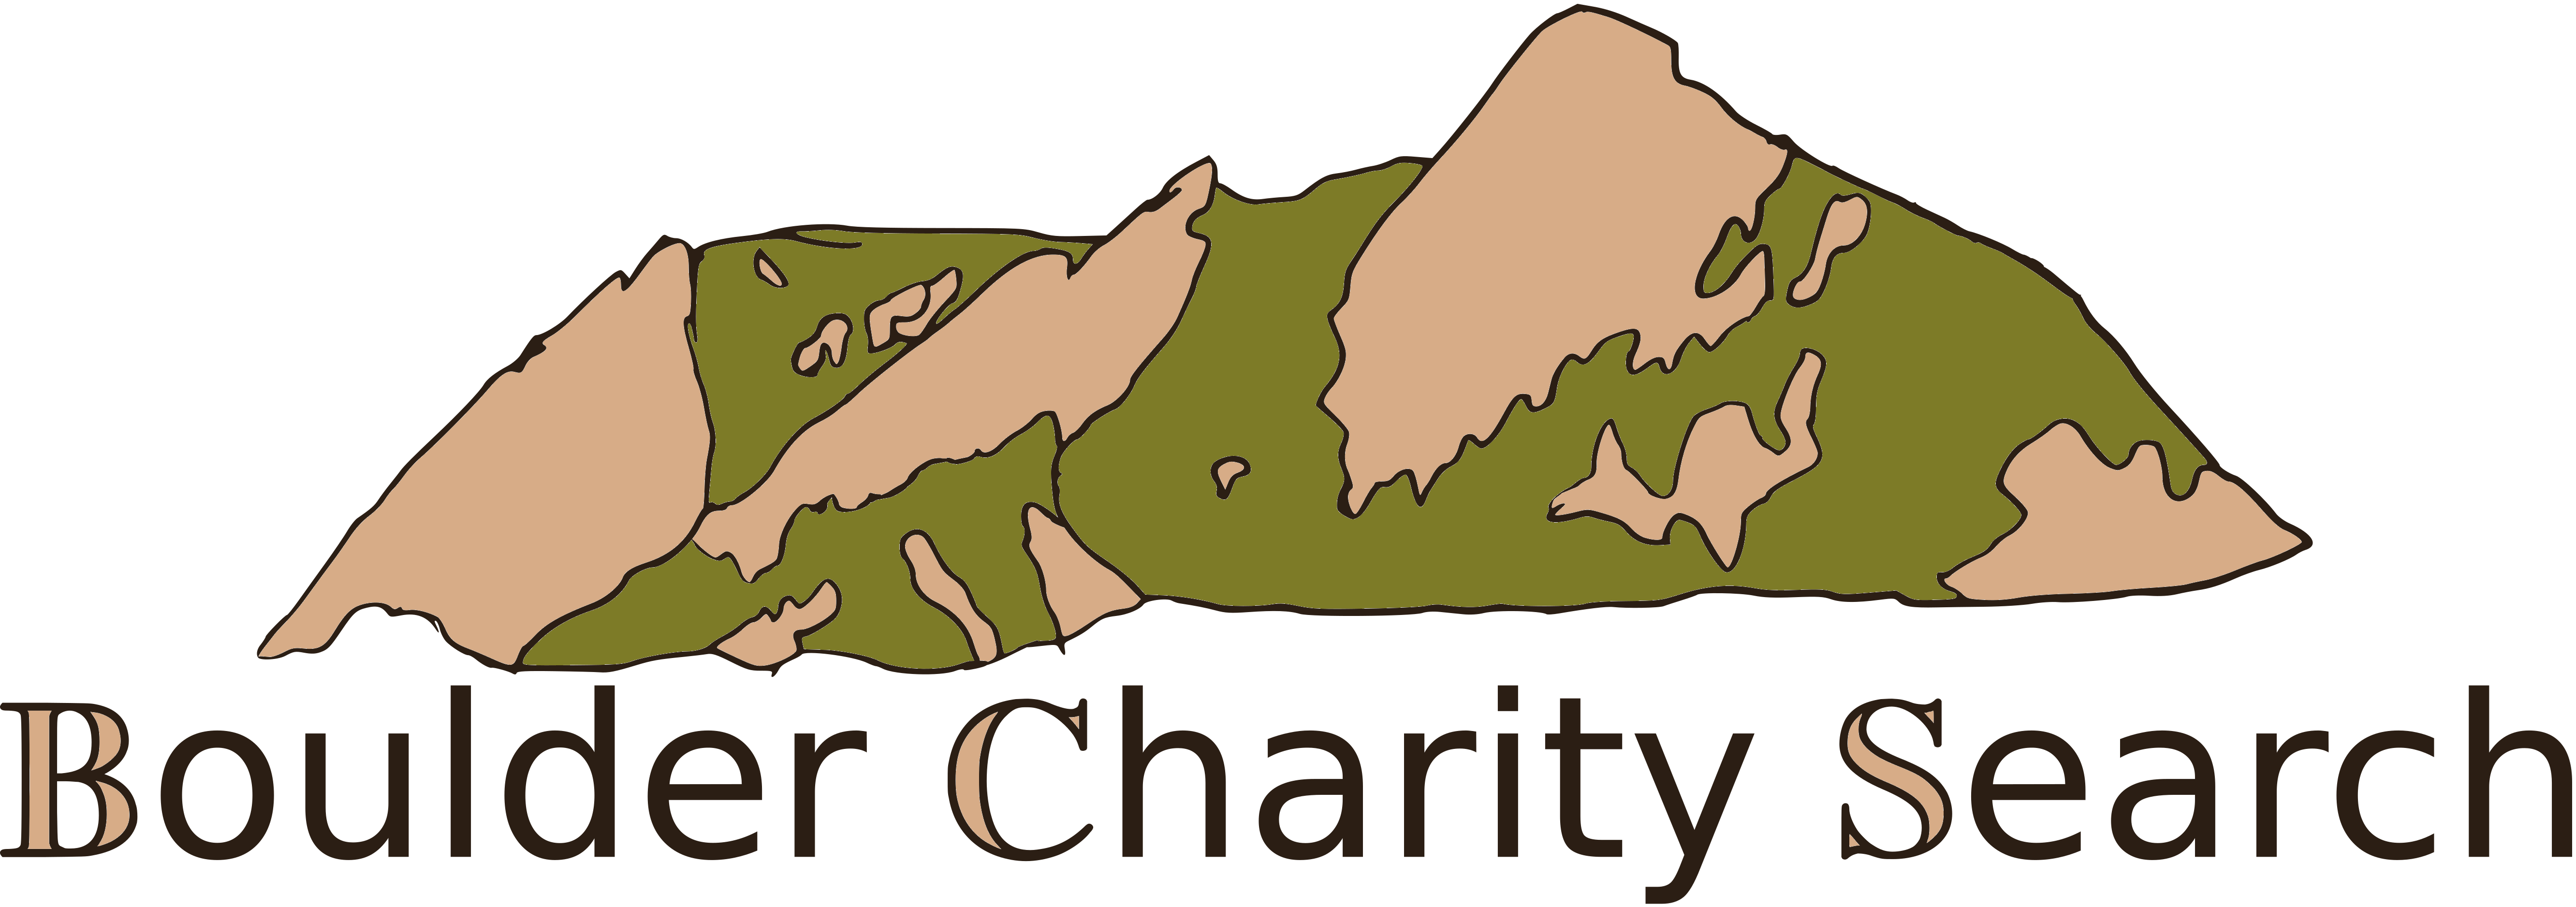 Boulder Charity Search